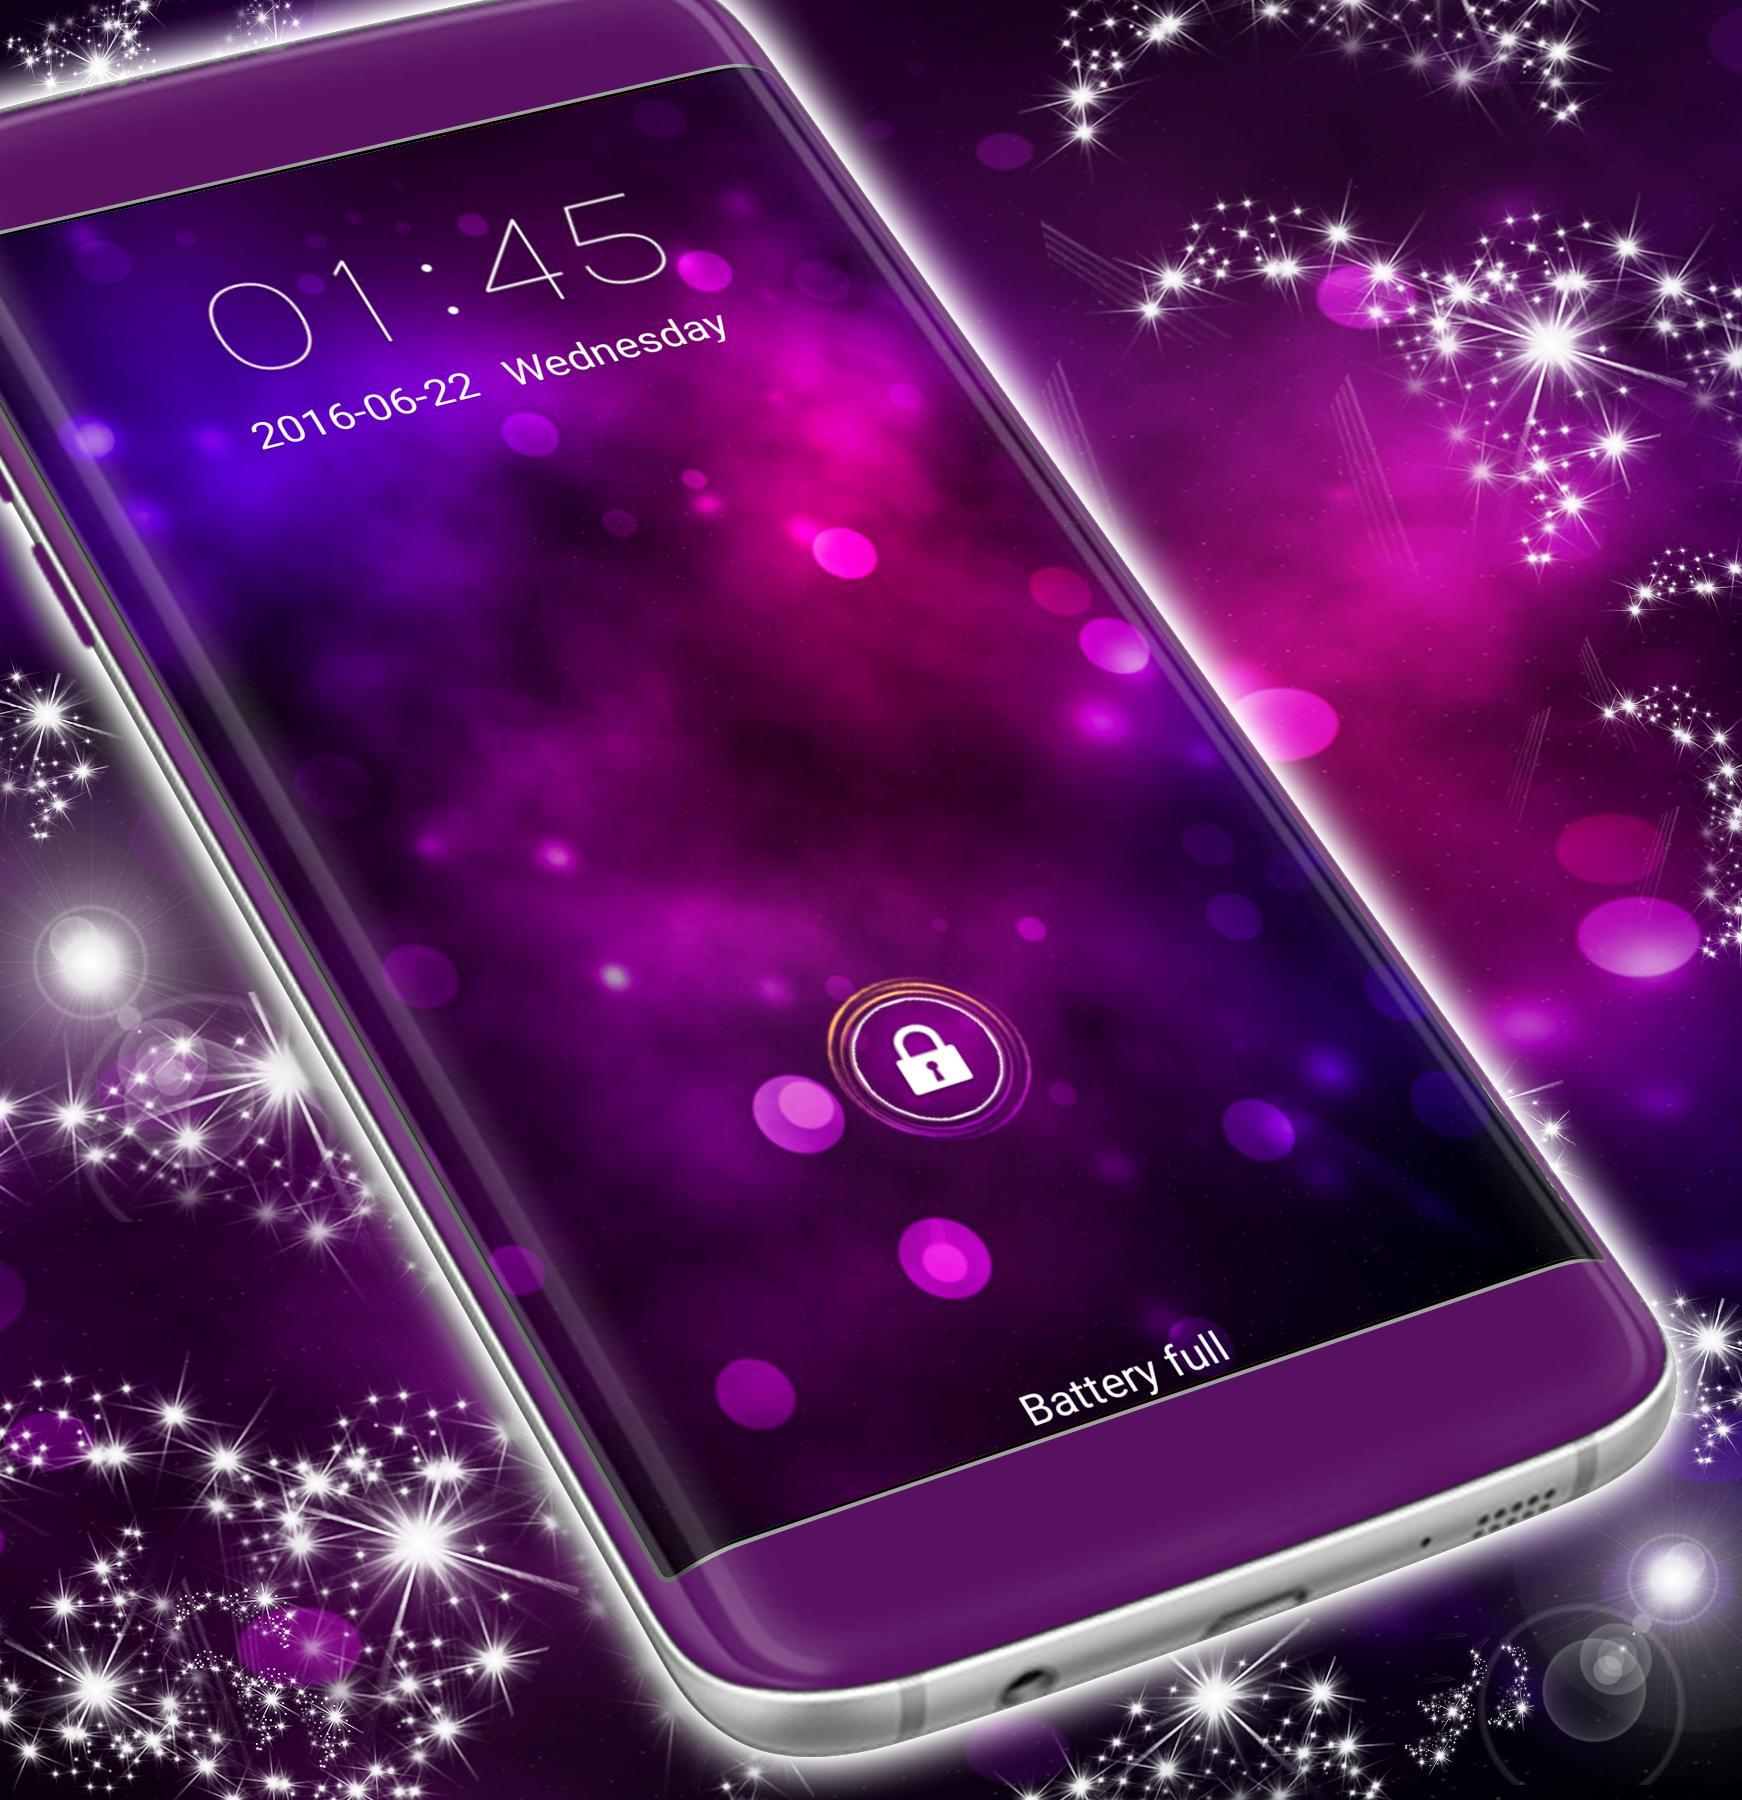 Violet Locker Theme for Android - APK Download